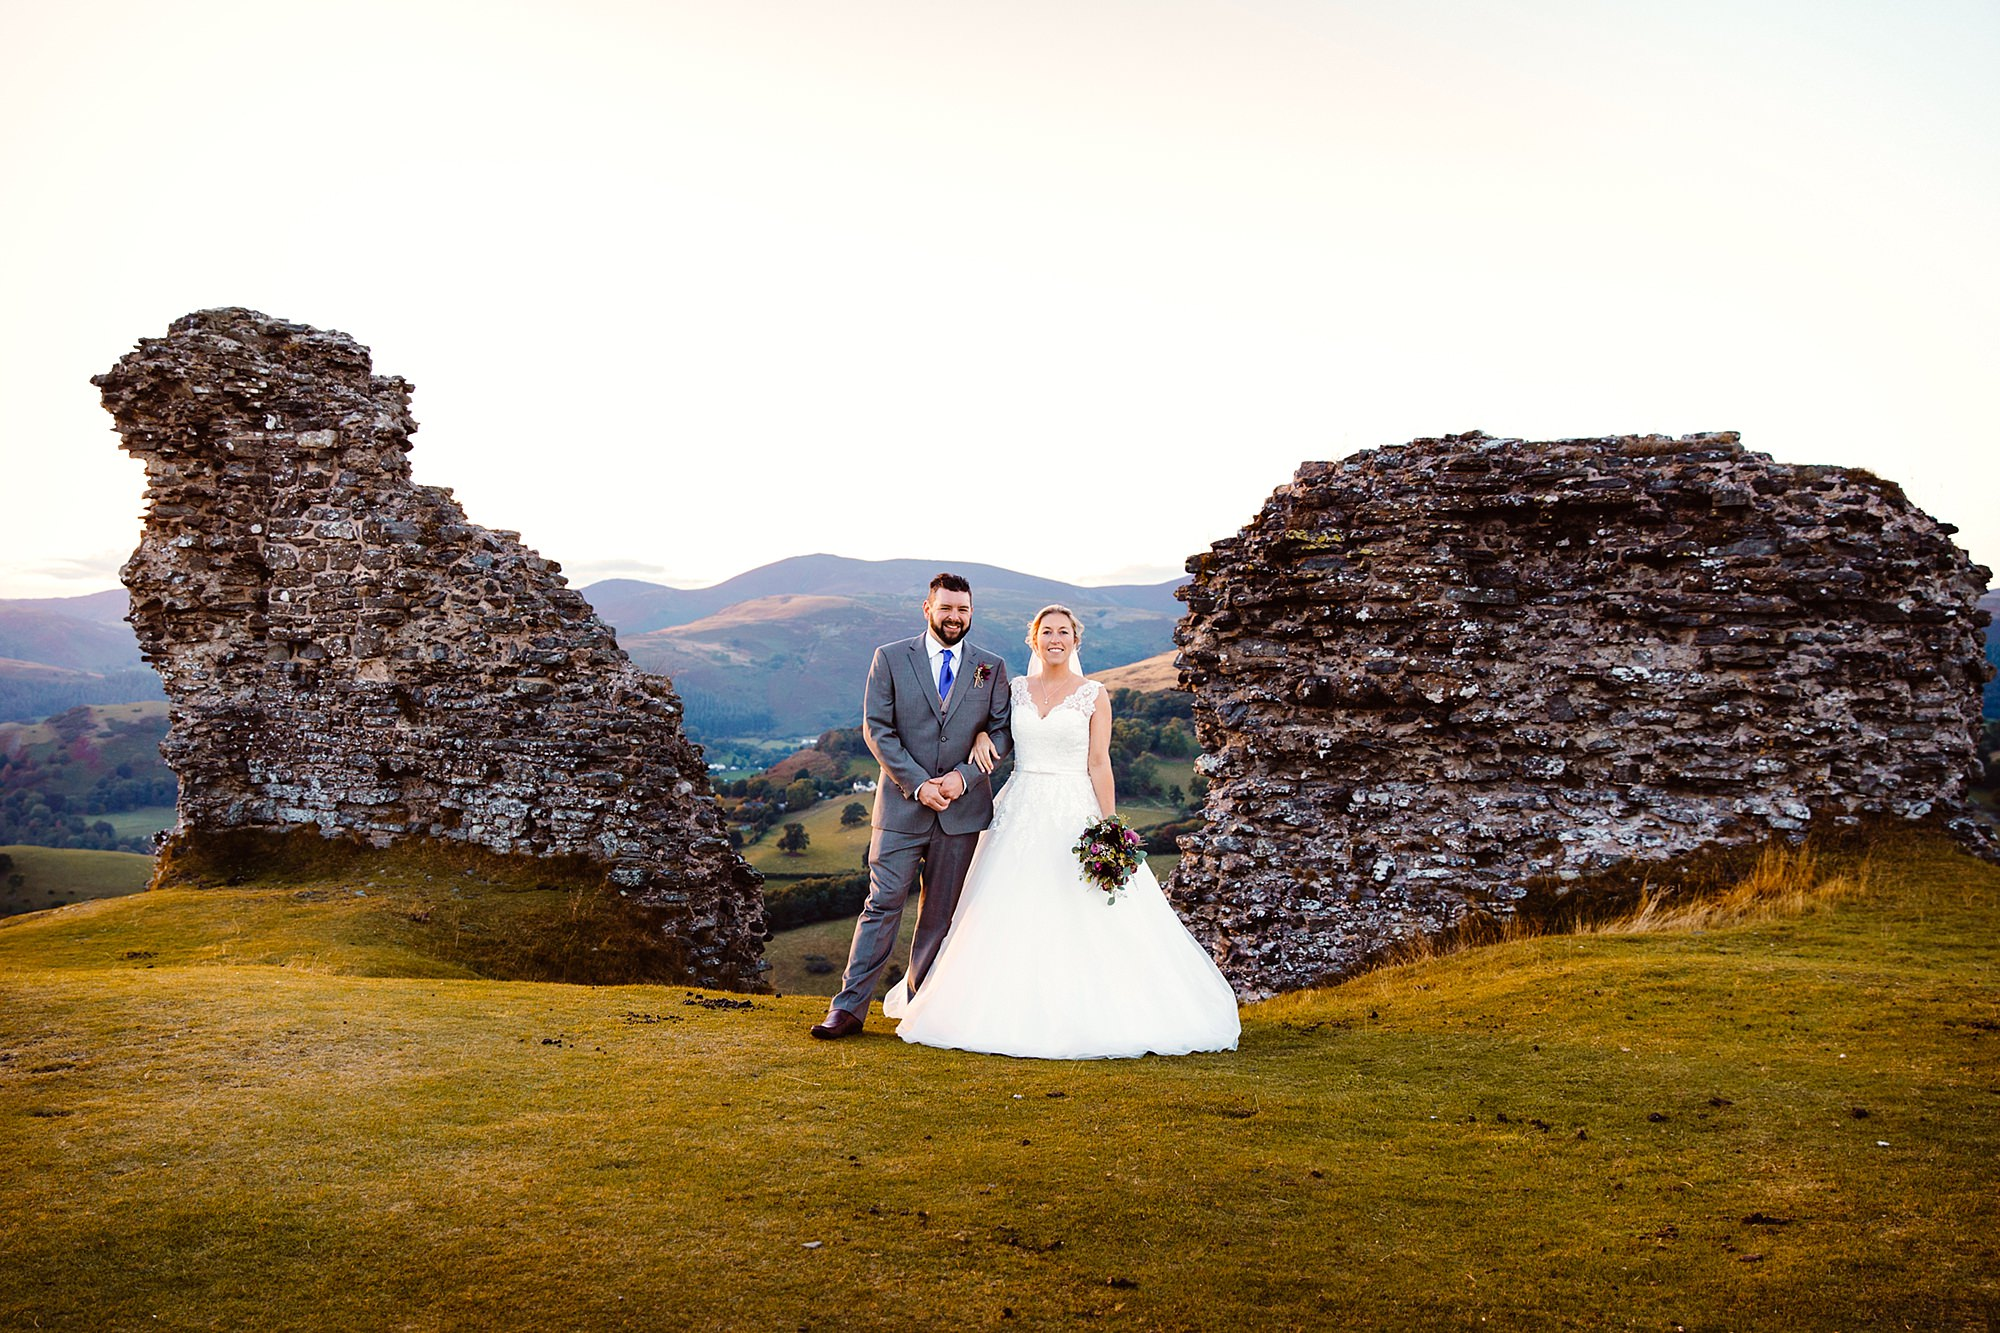 Castell dinas bran wedding photography portrait of bride and groom stood together at castle ruins